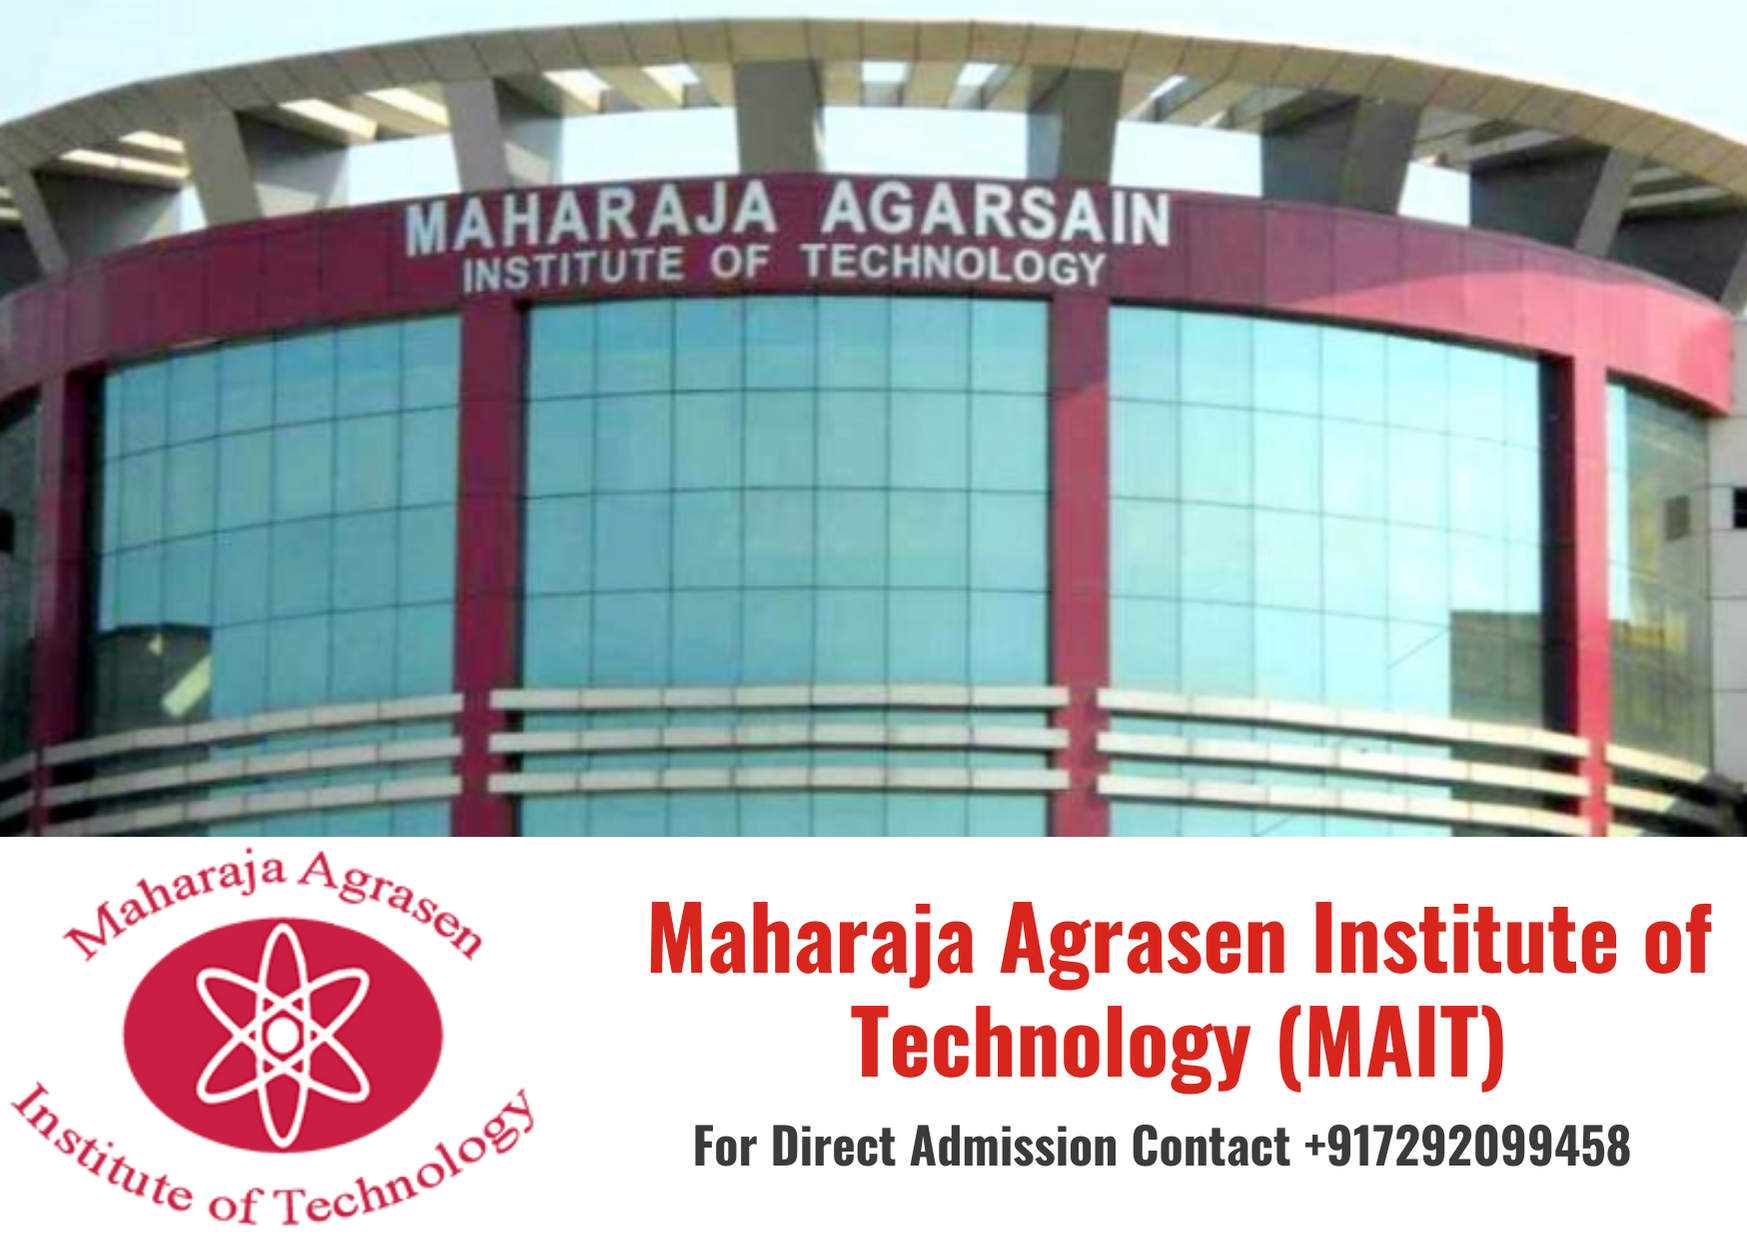 Direct Admission in Maharaja Agrasen Institute of Technology (MAIT), Delhi under Management Quota 2020